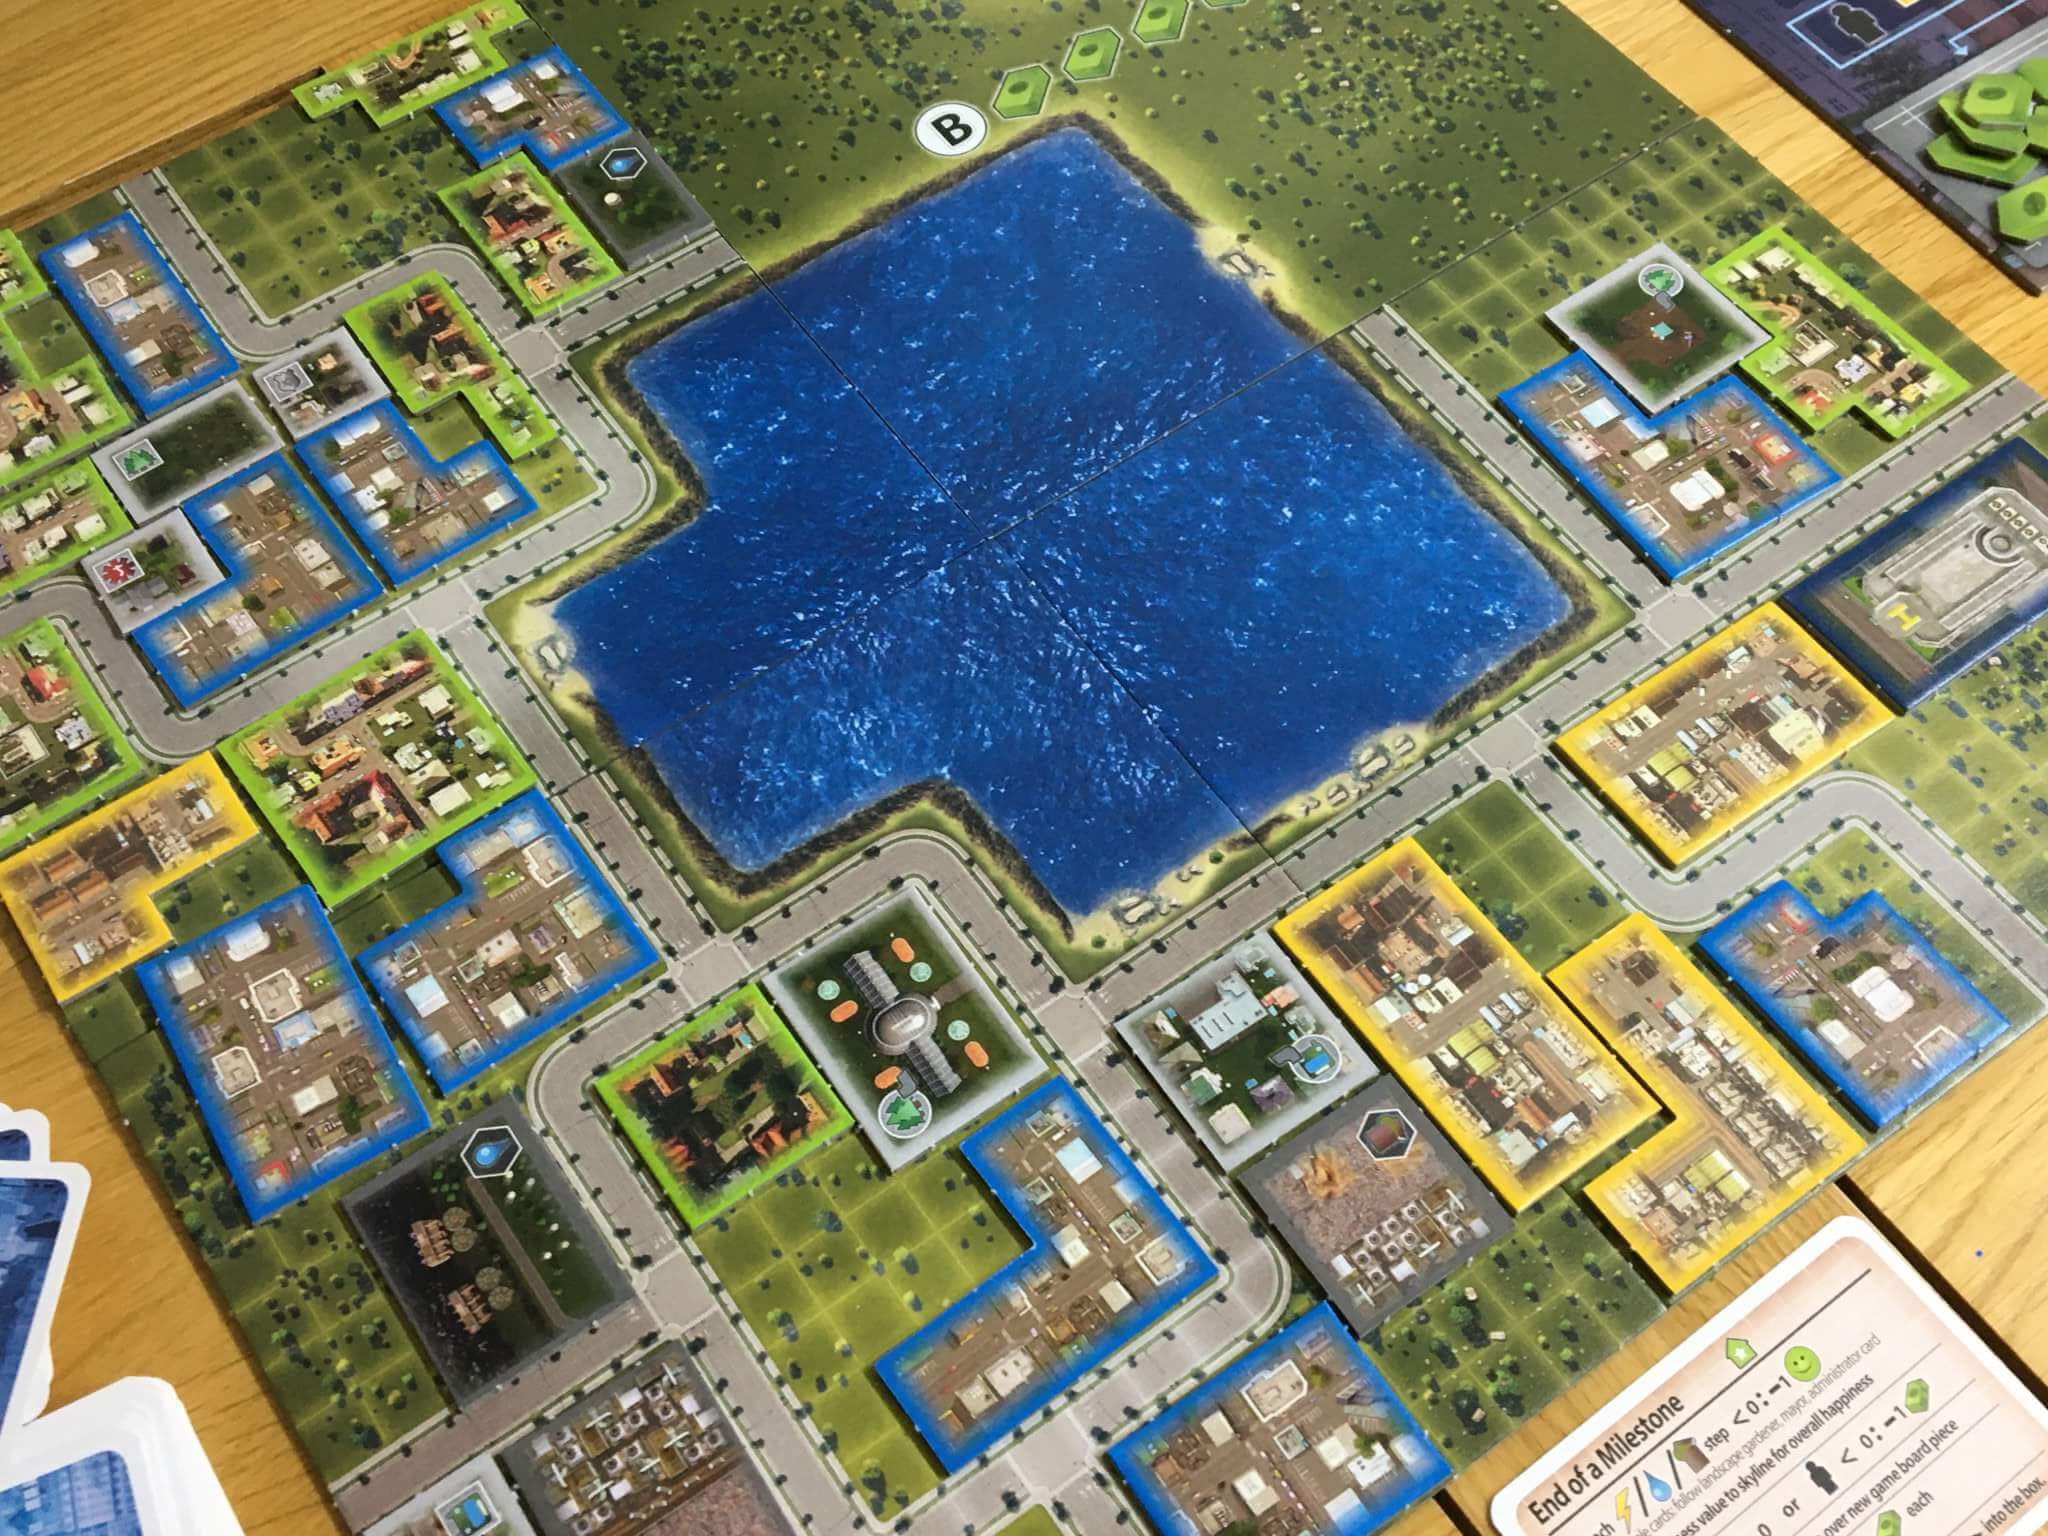 Cities Skylines The Board Game Building A City Big Boss Battle B3